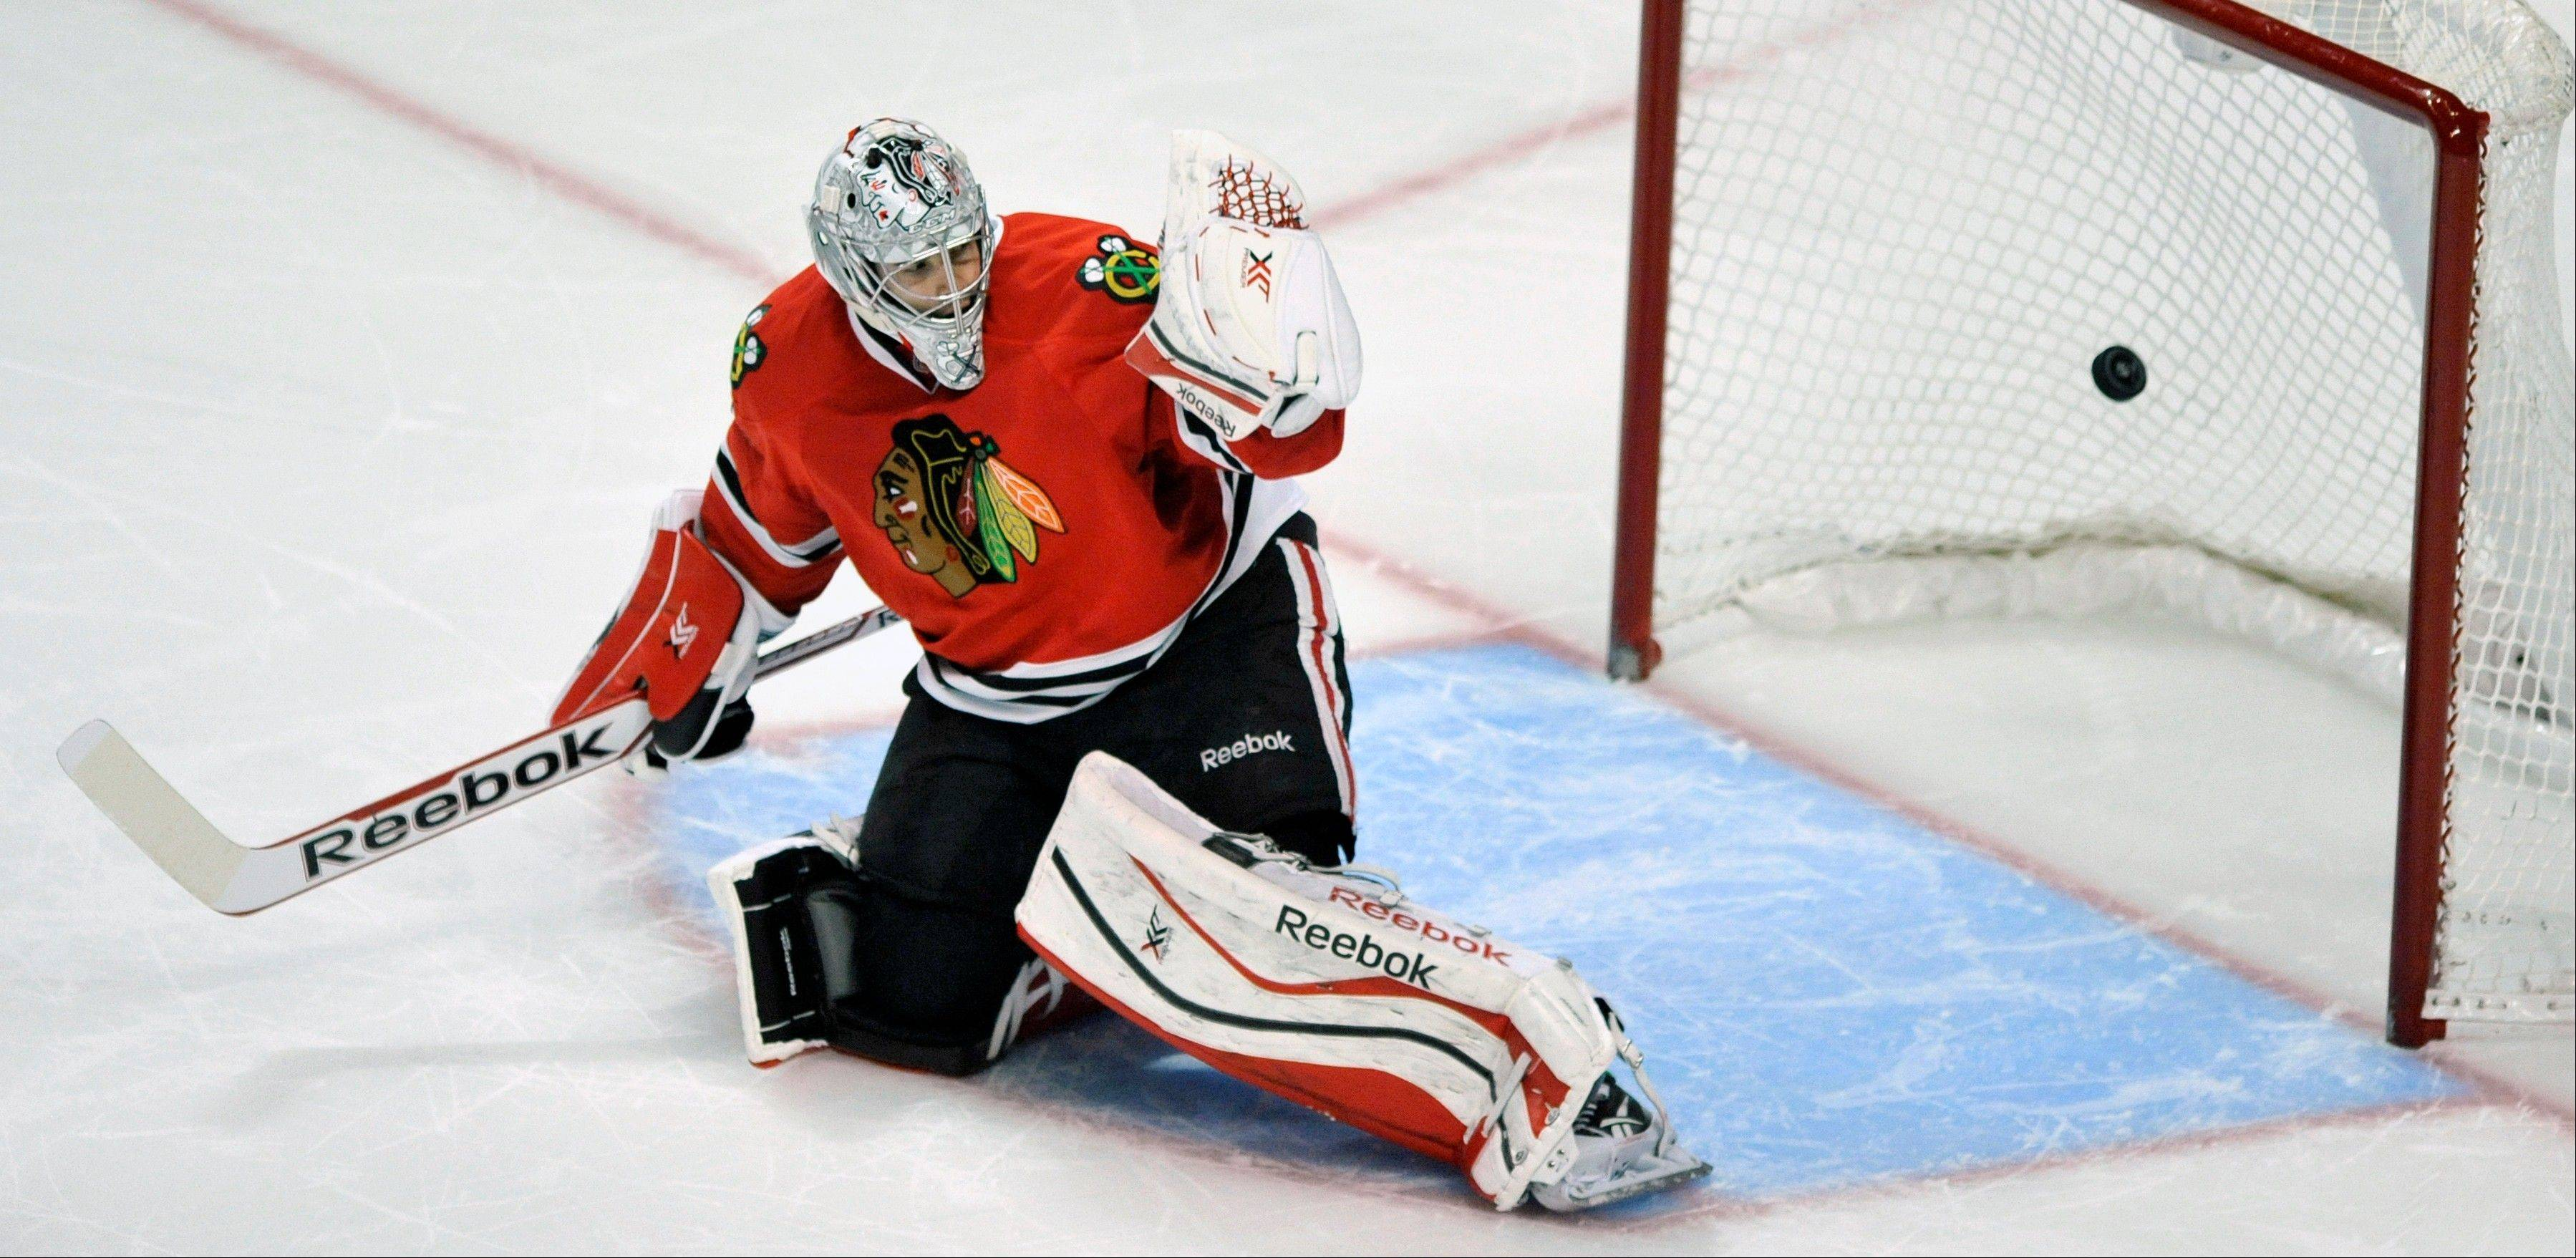 Blackhawks goalie Corey Crawford misses the winning goal scored by San Jose Sharks' Joe Pavelski during a shootout Sunday in an NHL hockey game in Chicago. San Jose won 3-2.